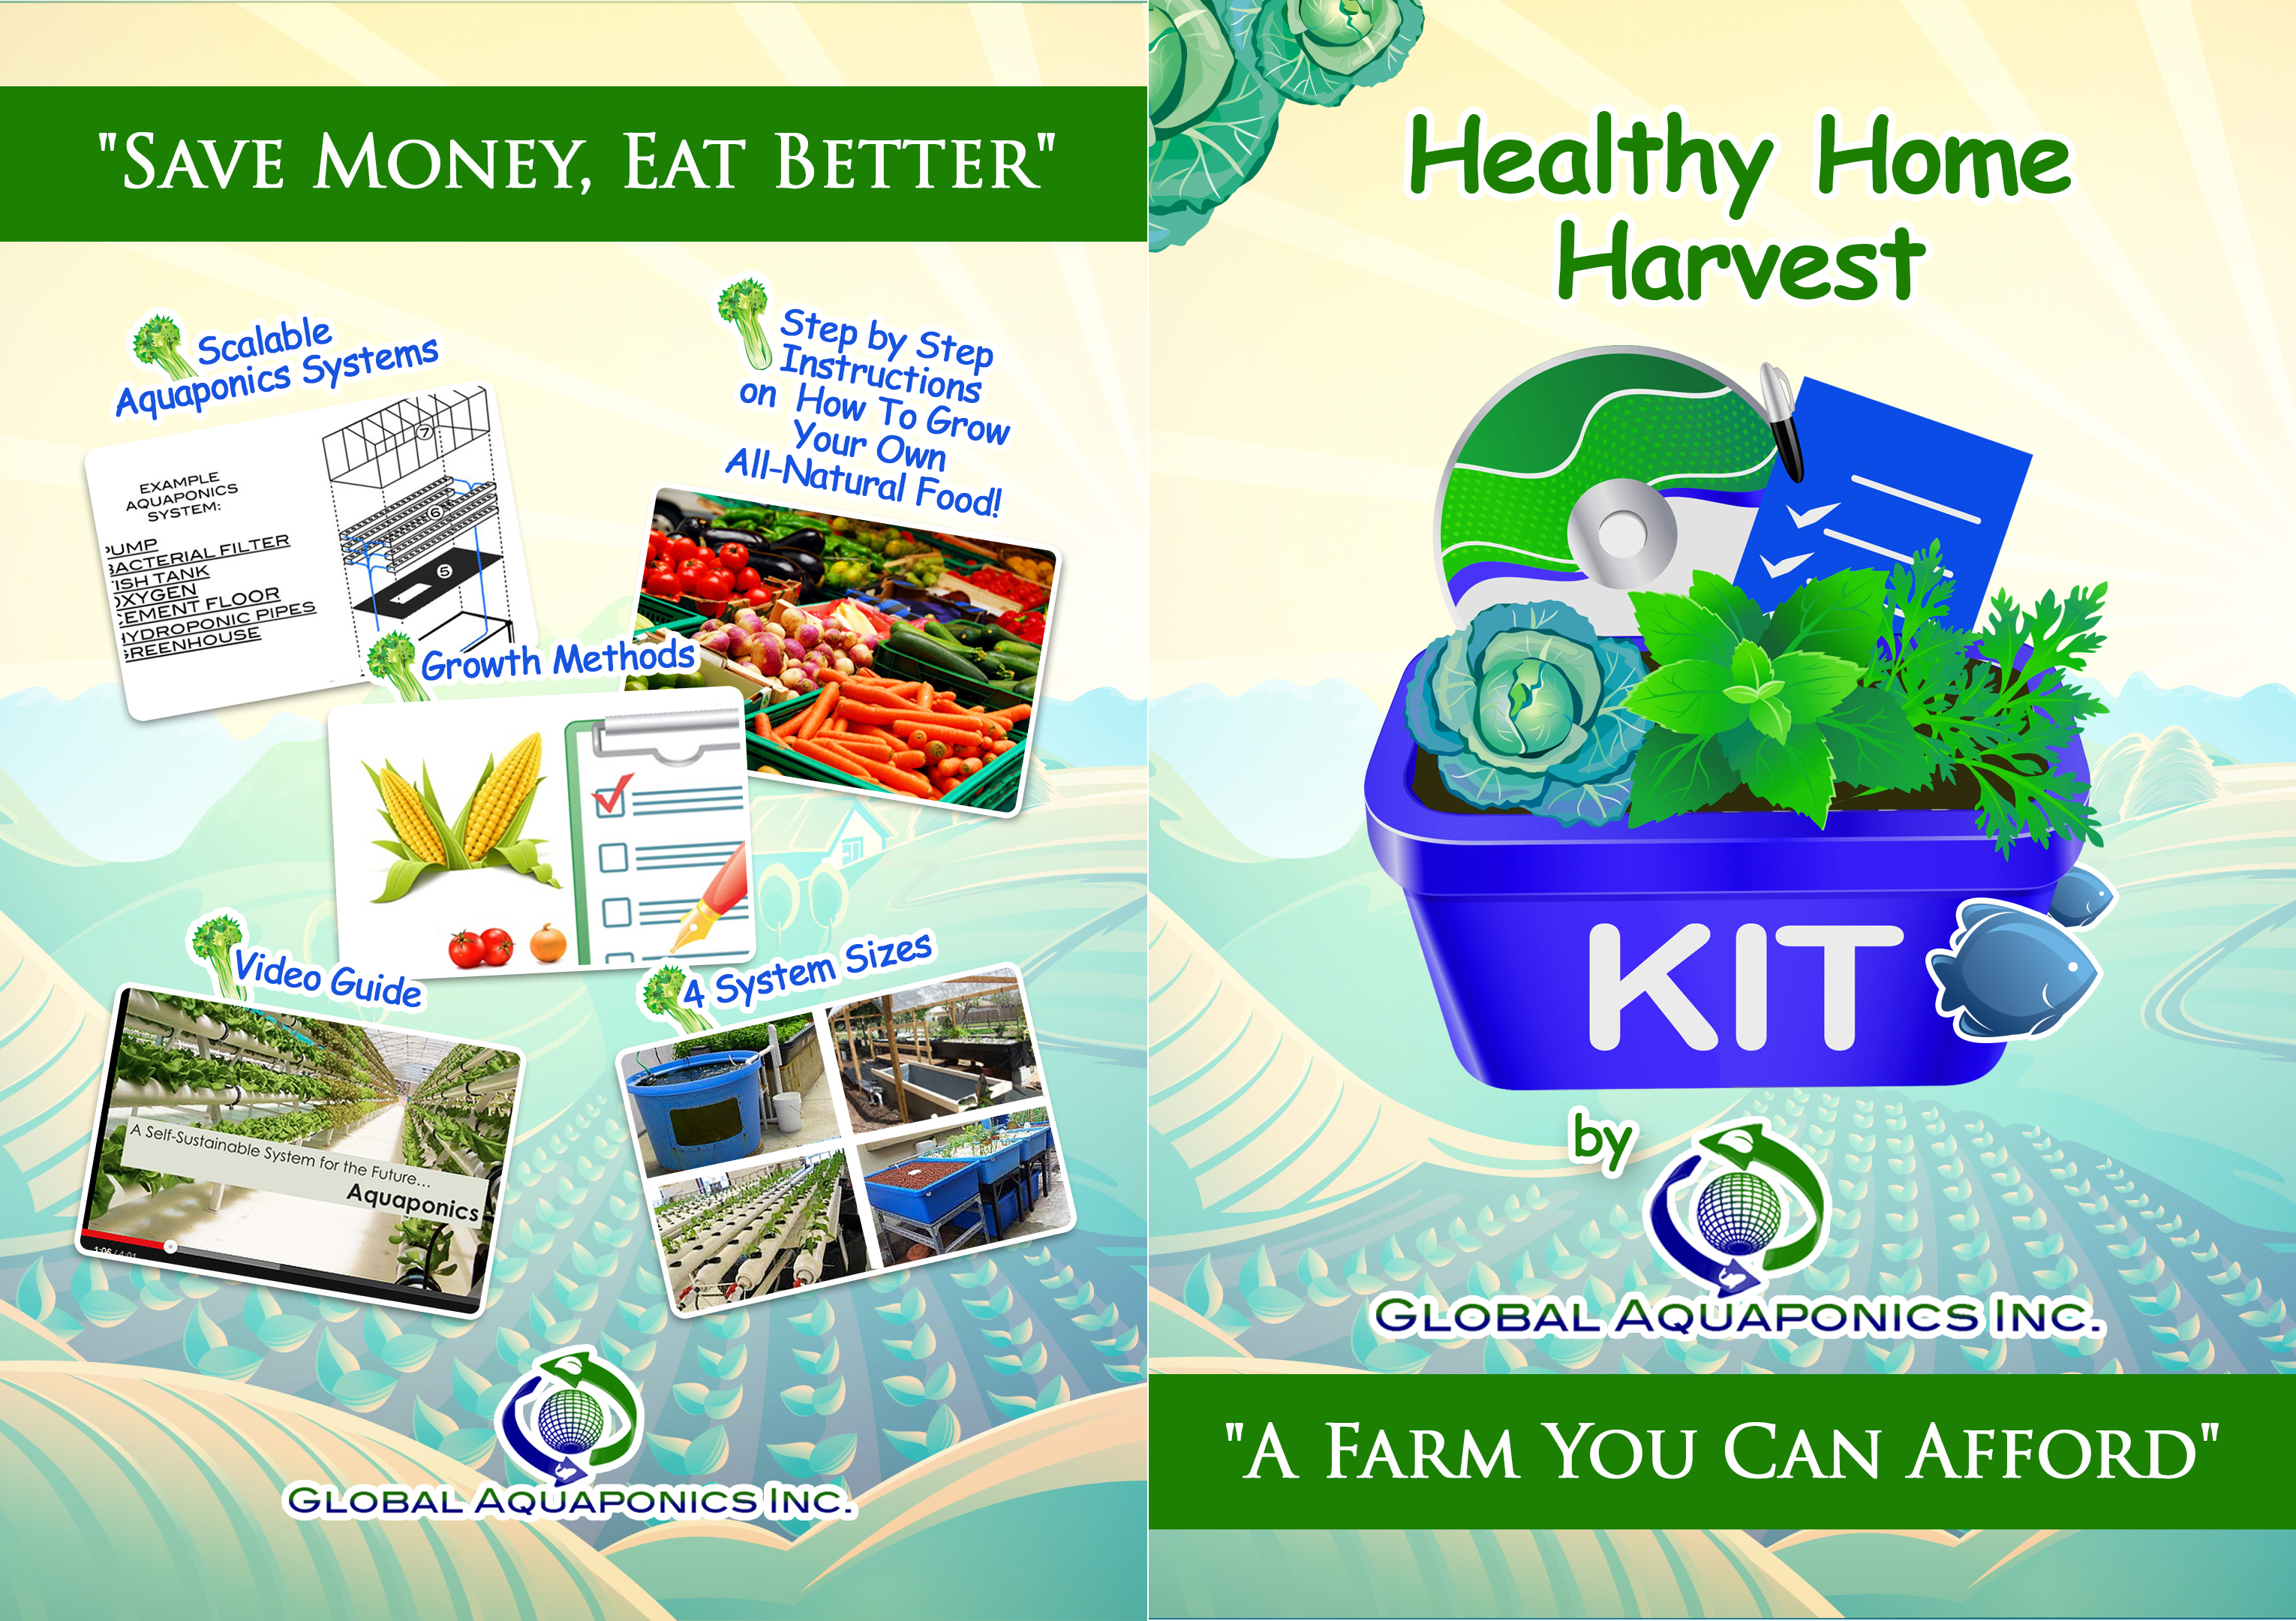 Healthy Home Harvest Kit for Backyard & Community Aquaponics